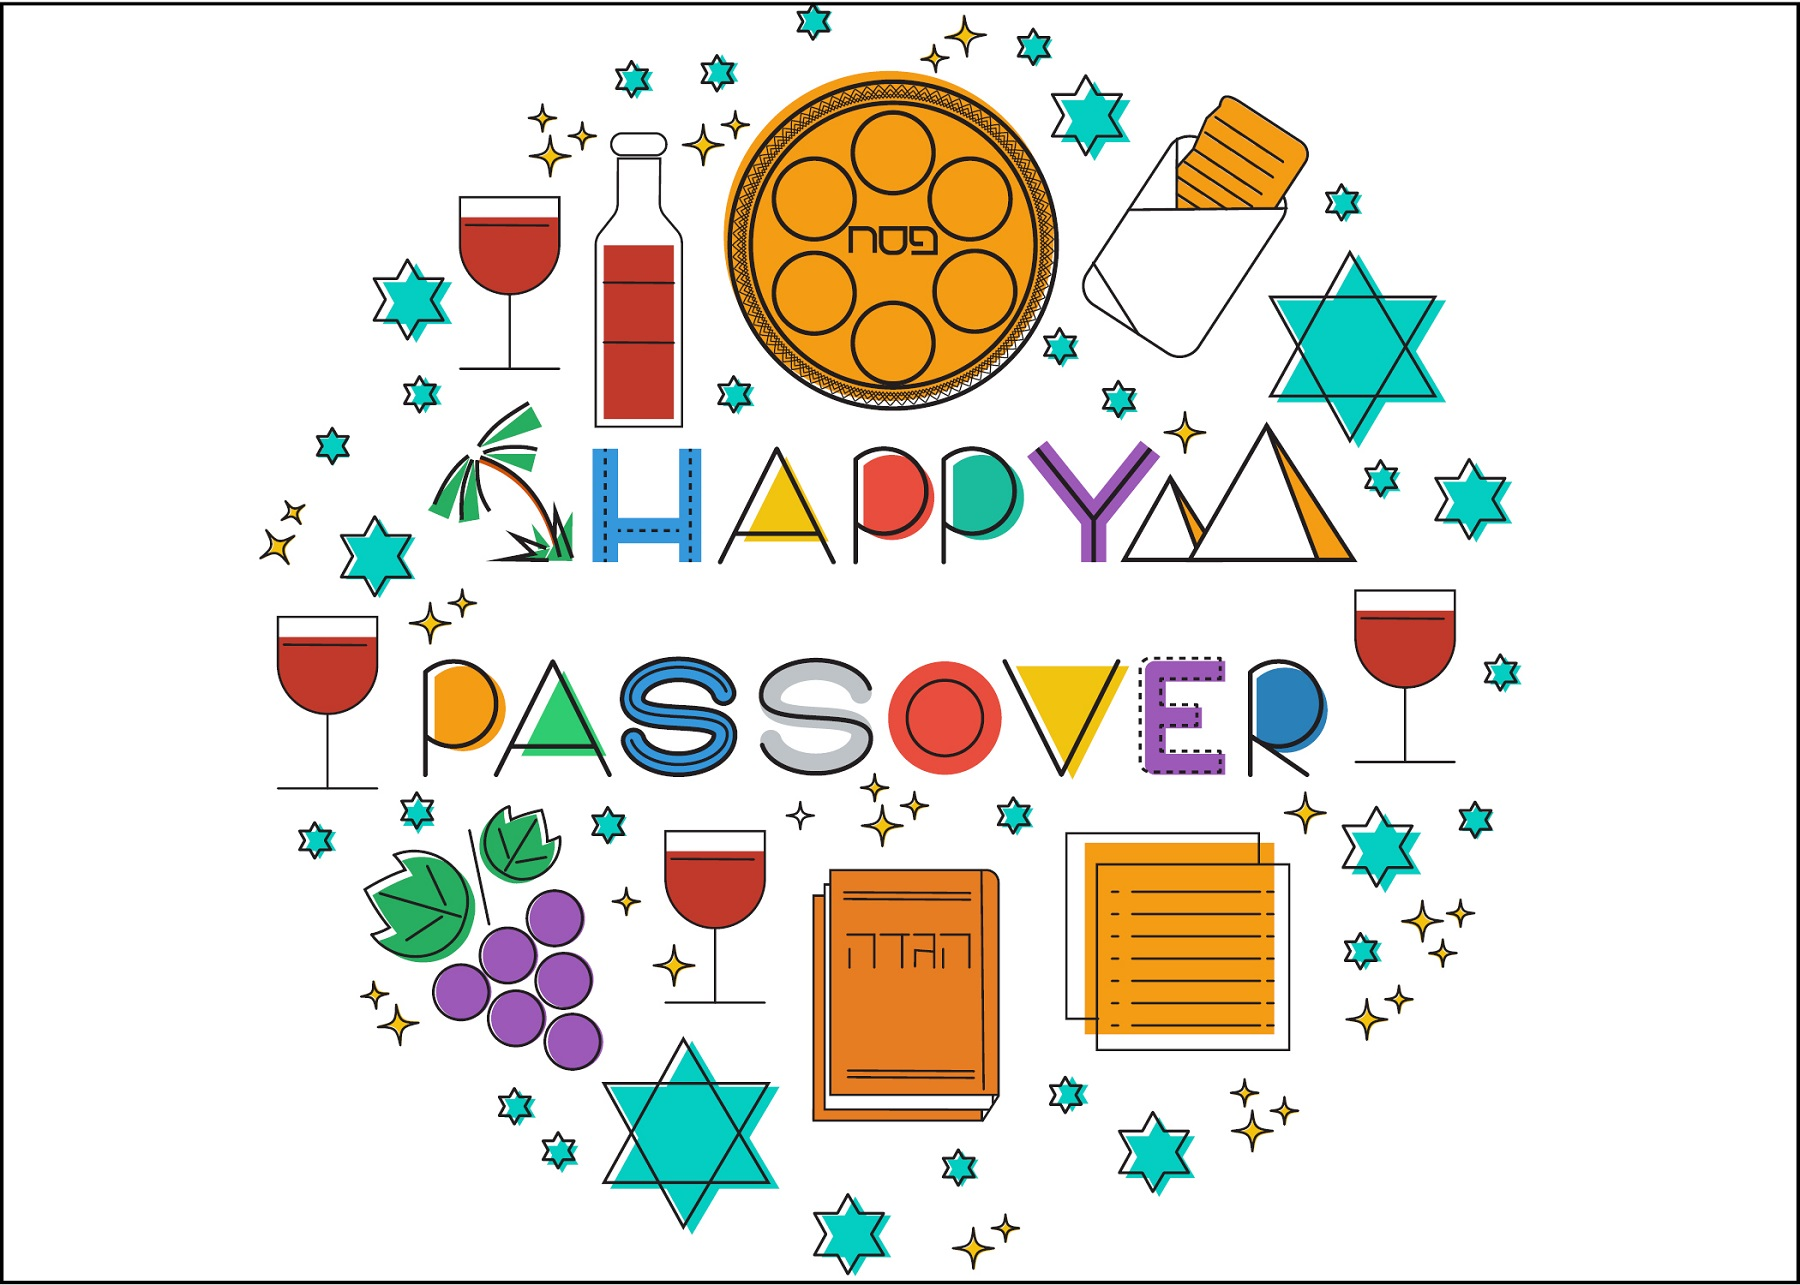 Passover Cards 2019_Stars_Oulined.jpg